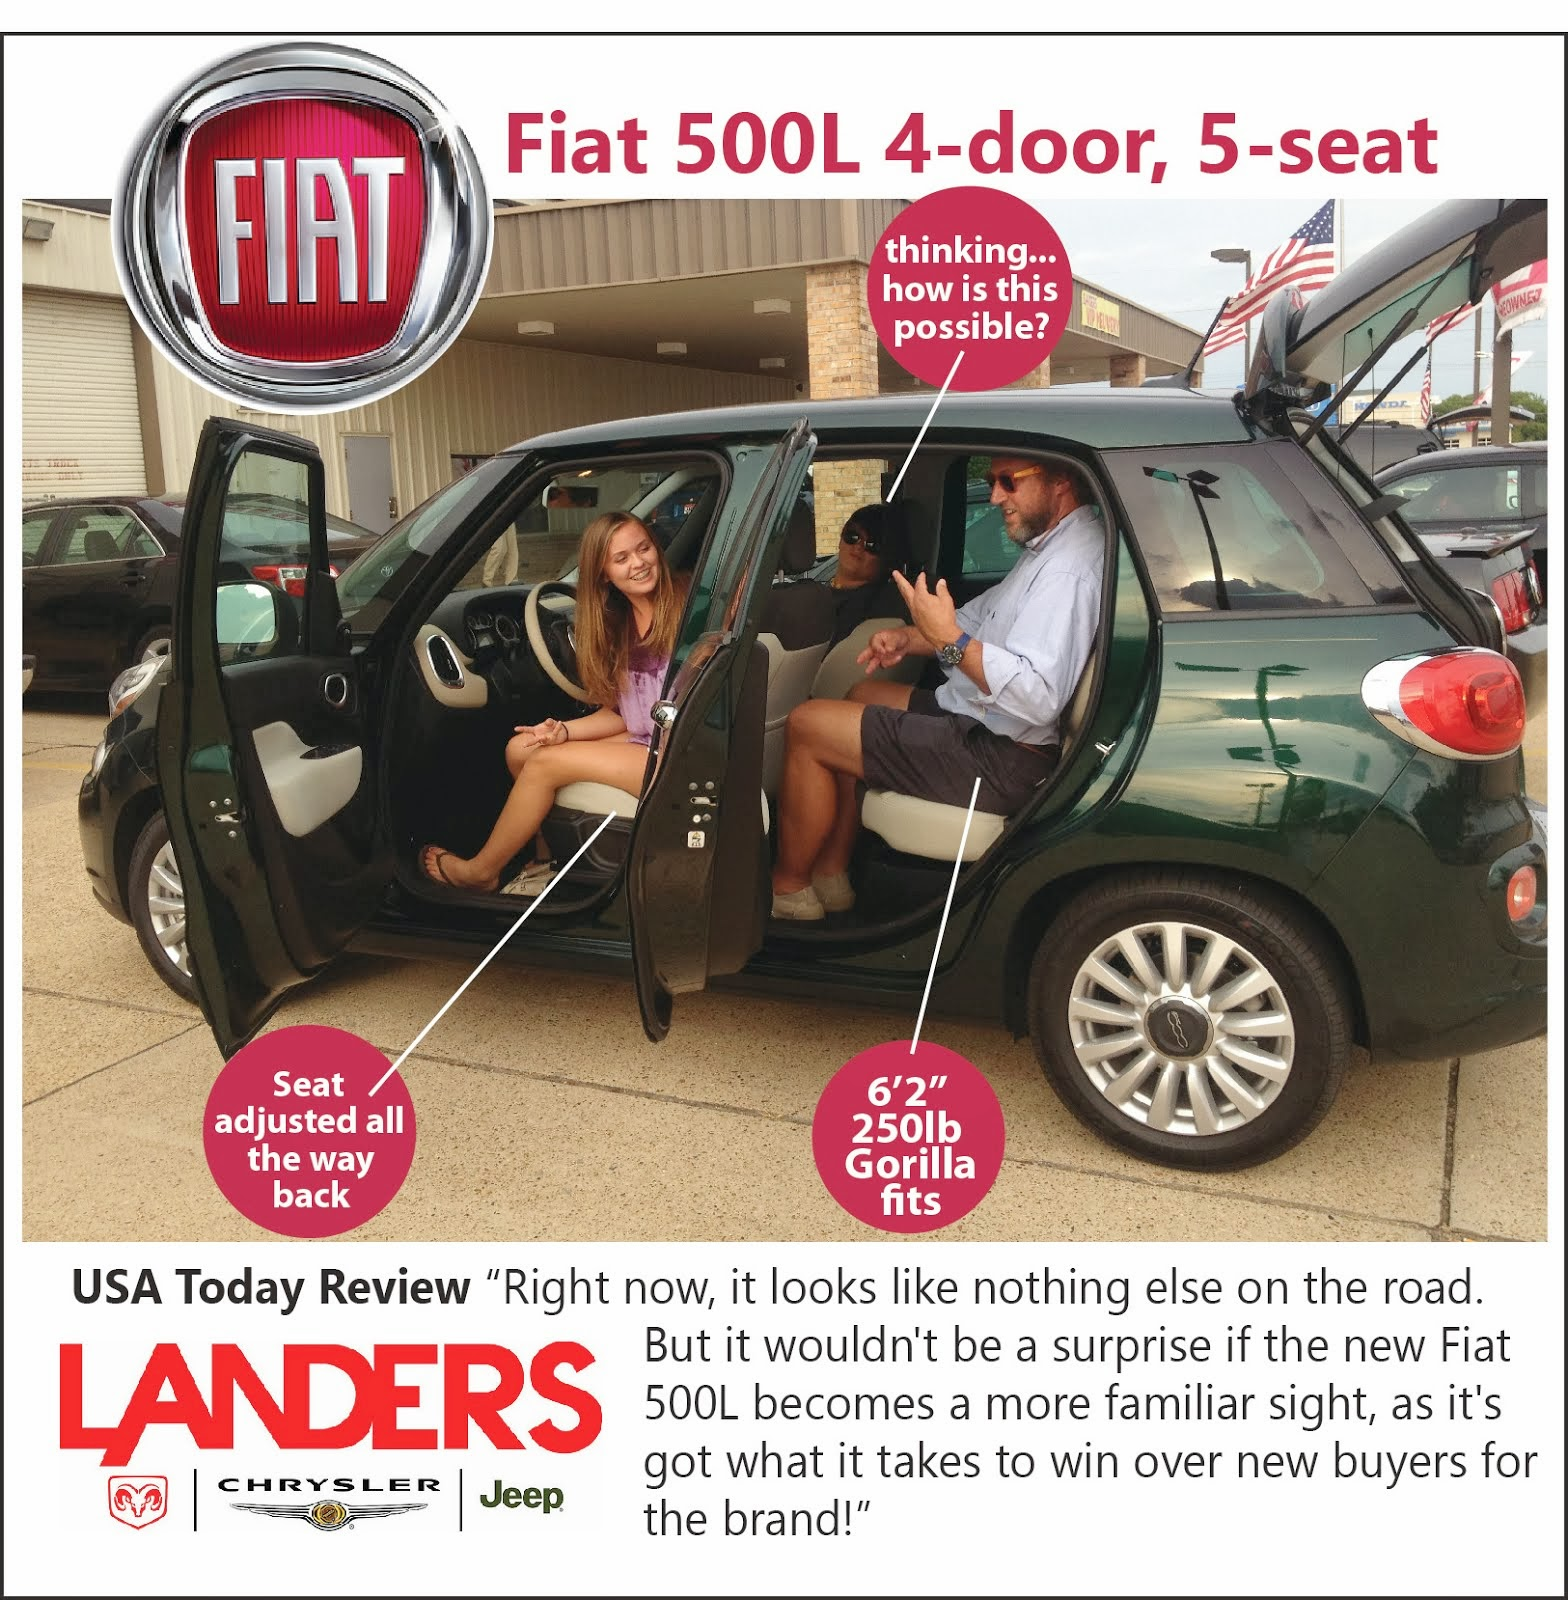 FIAT of SHREVEPORT